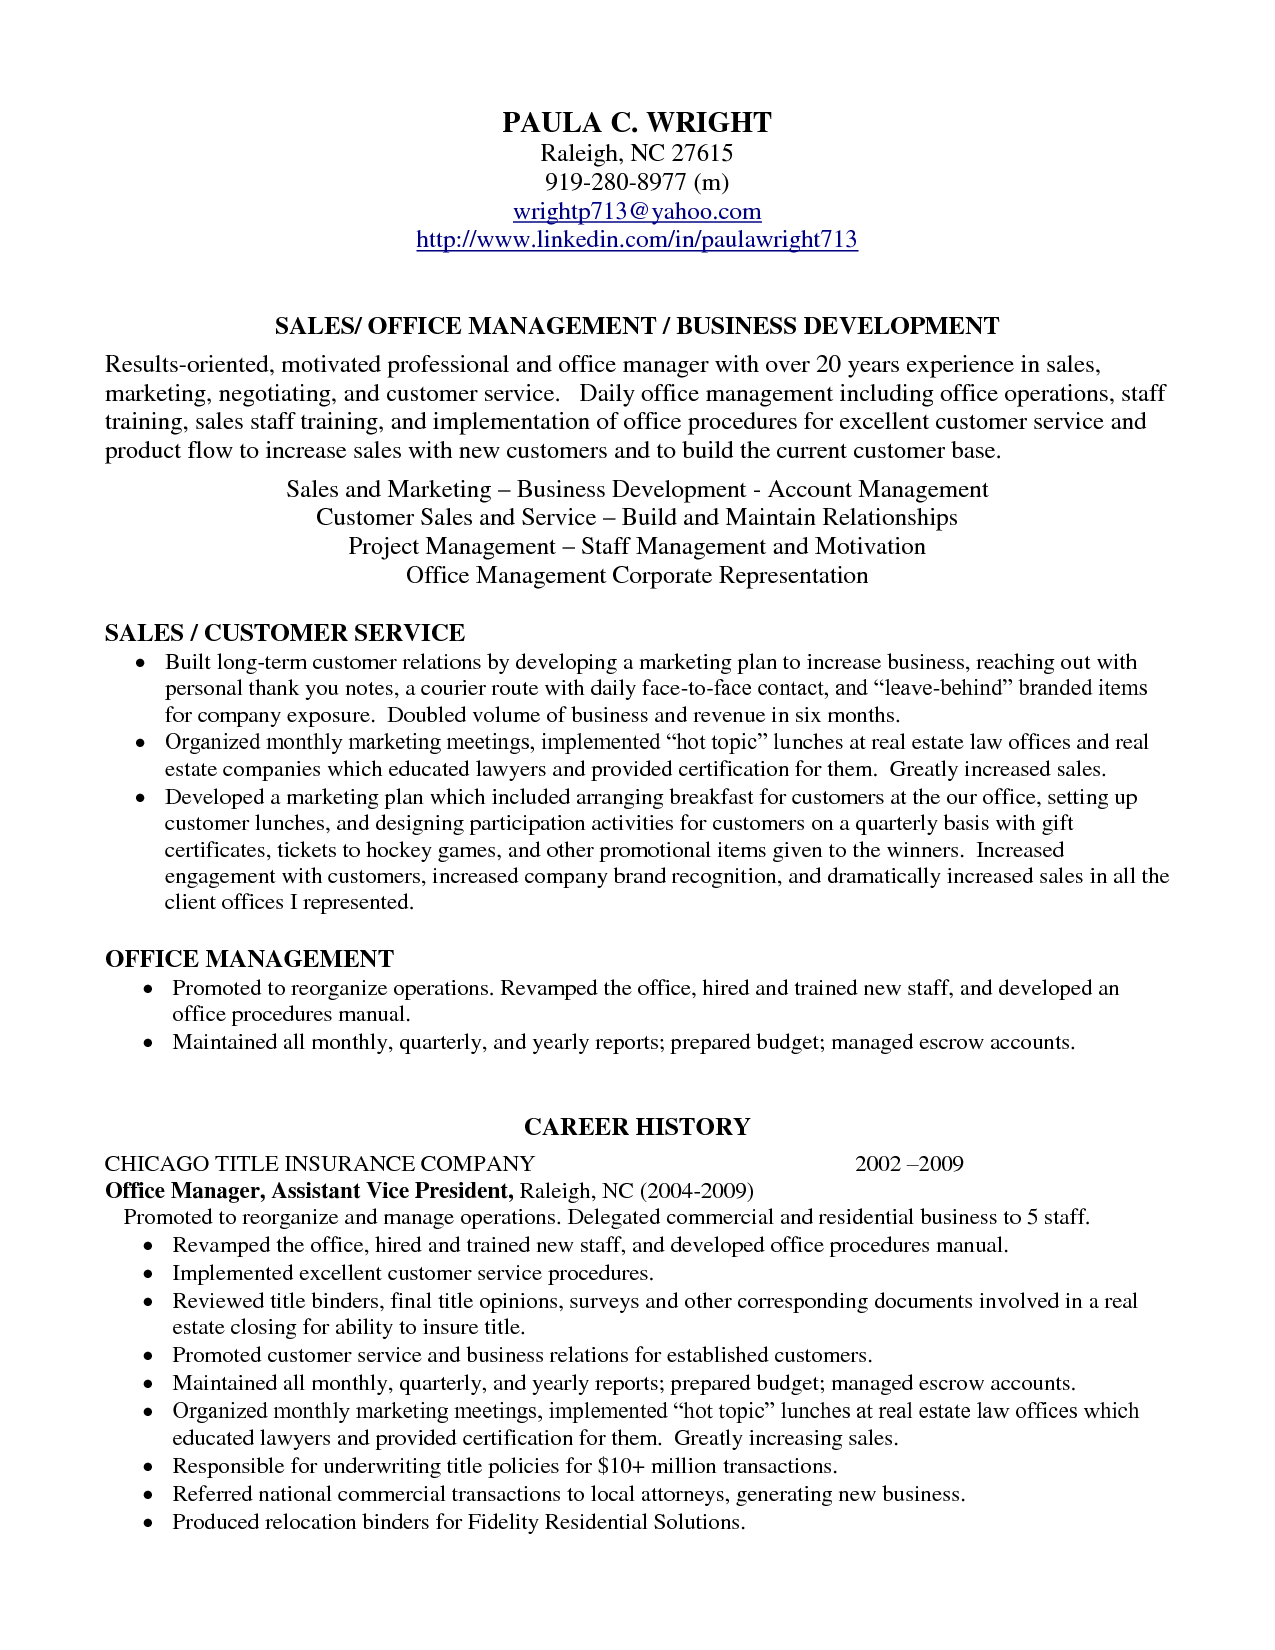 Resume Professional Profile Examples. Professional Profile